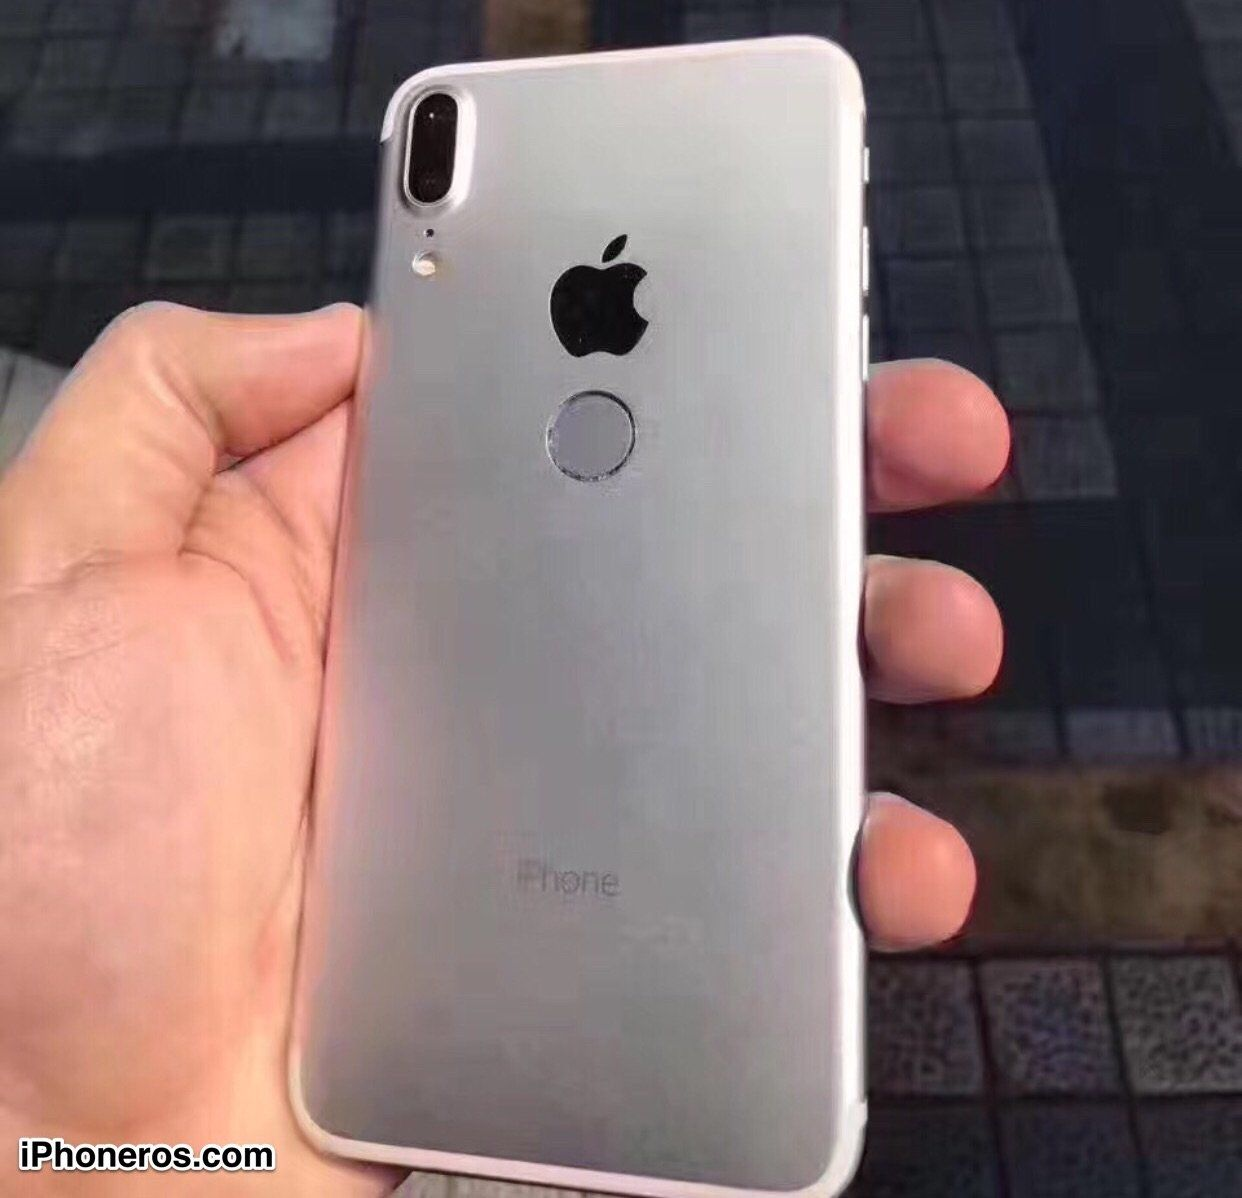 The latest set of supposed iPhone 8 photos are fake, and